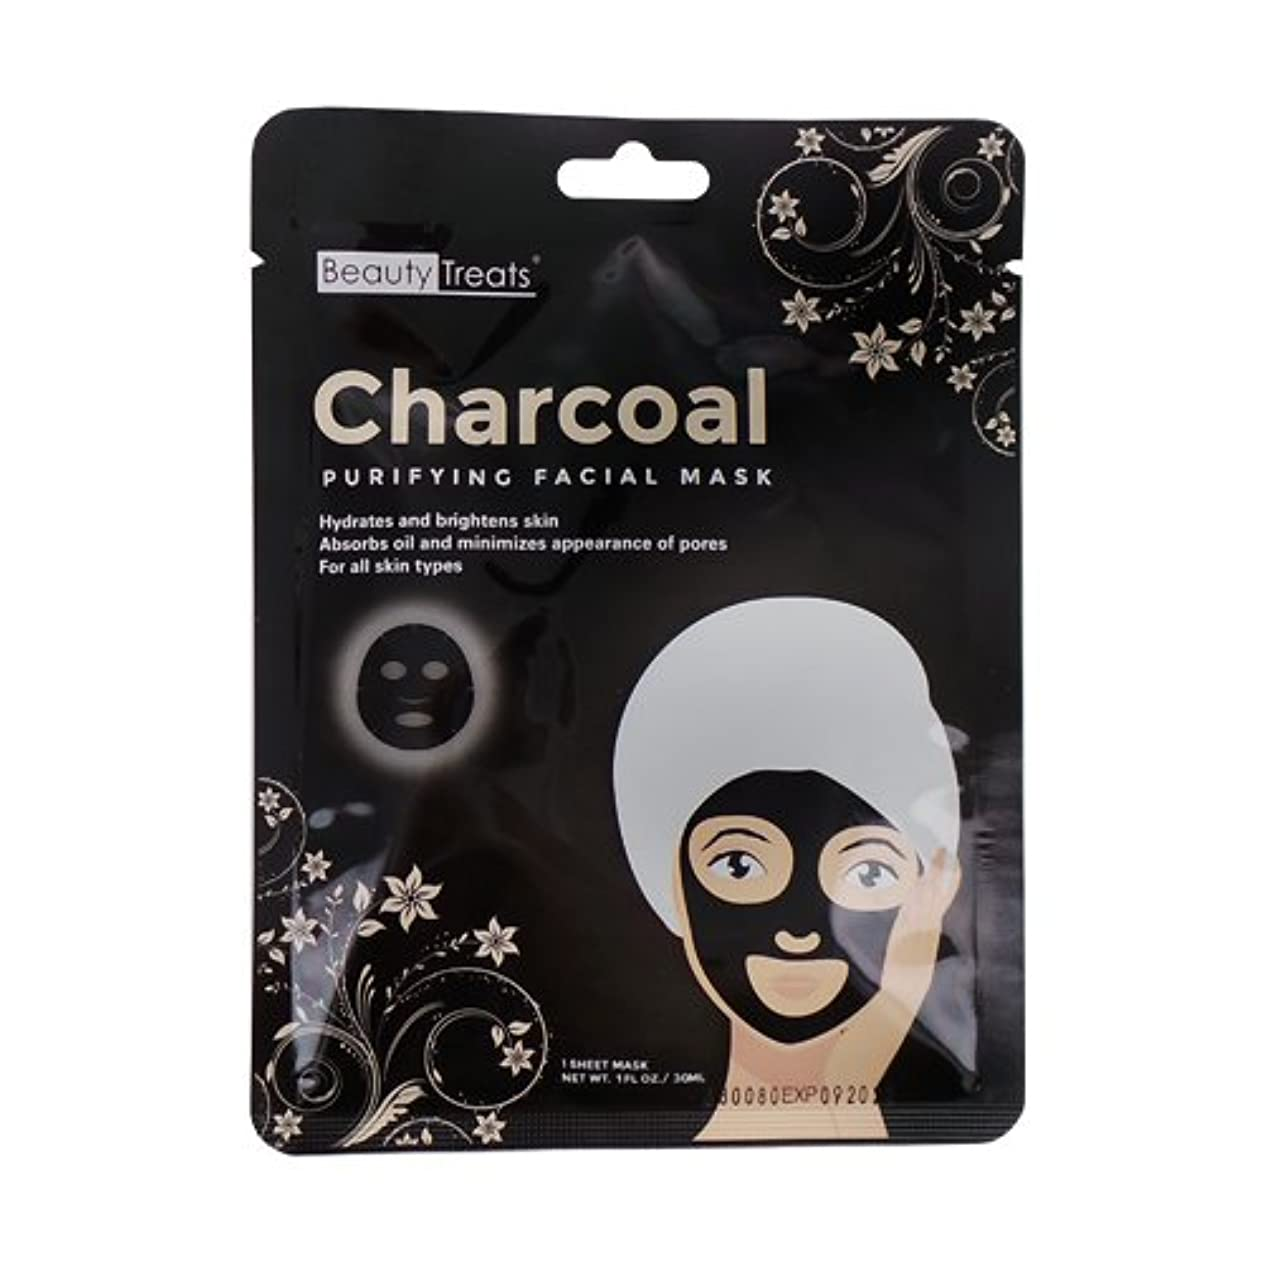 州推定する偶然の(3 Pack) BEAUTY TREATS Charcoal Purifying Facial Mask (並行輸入品)